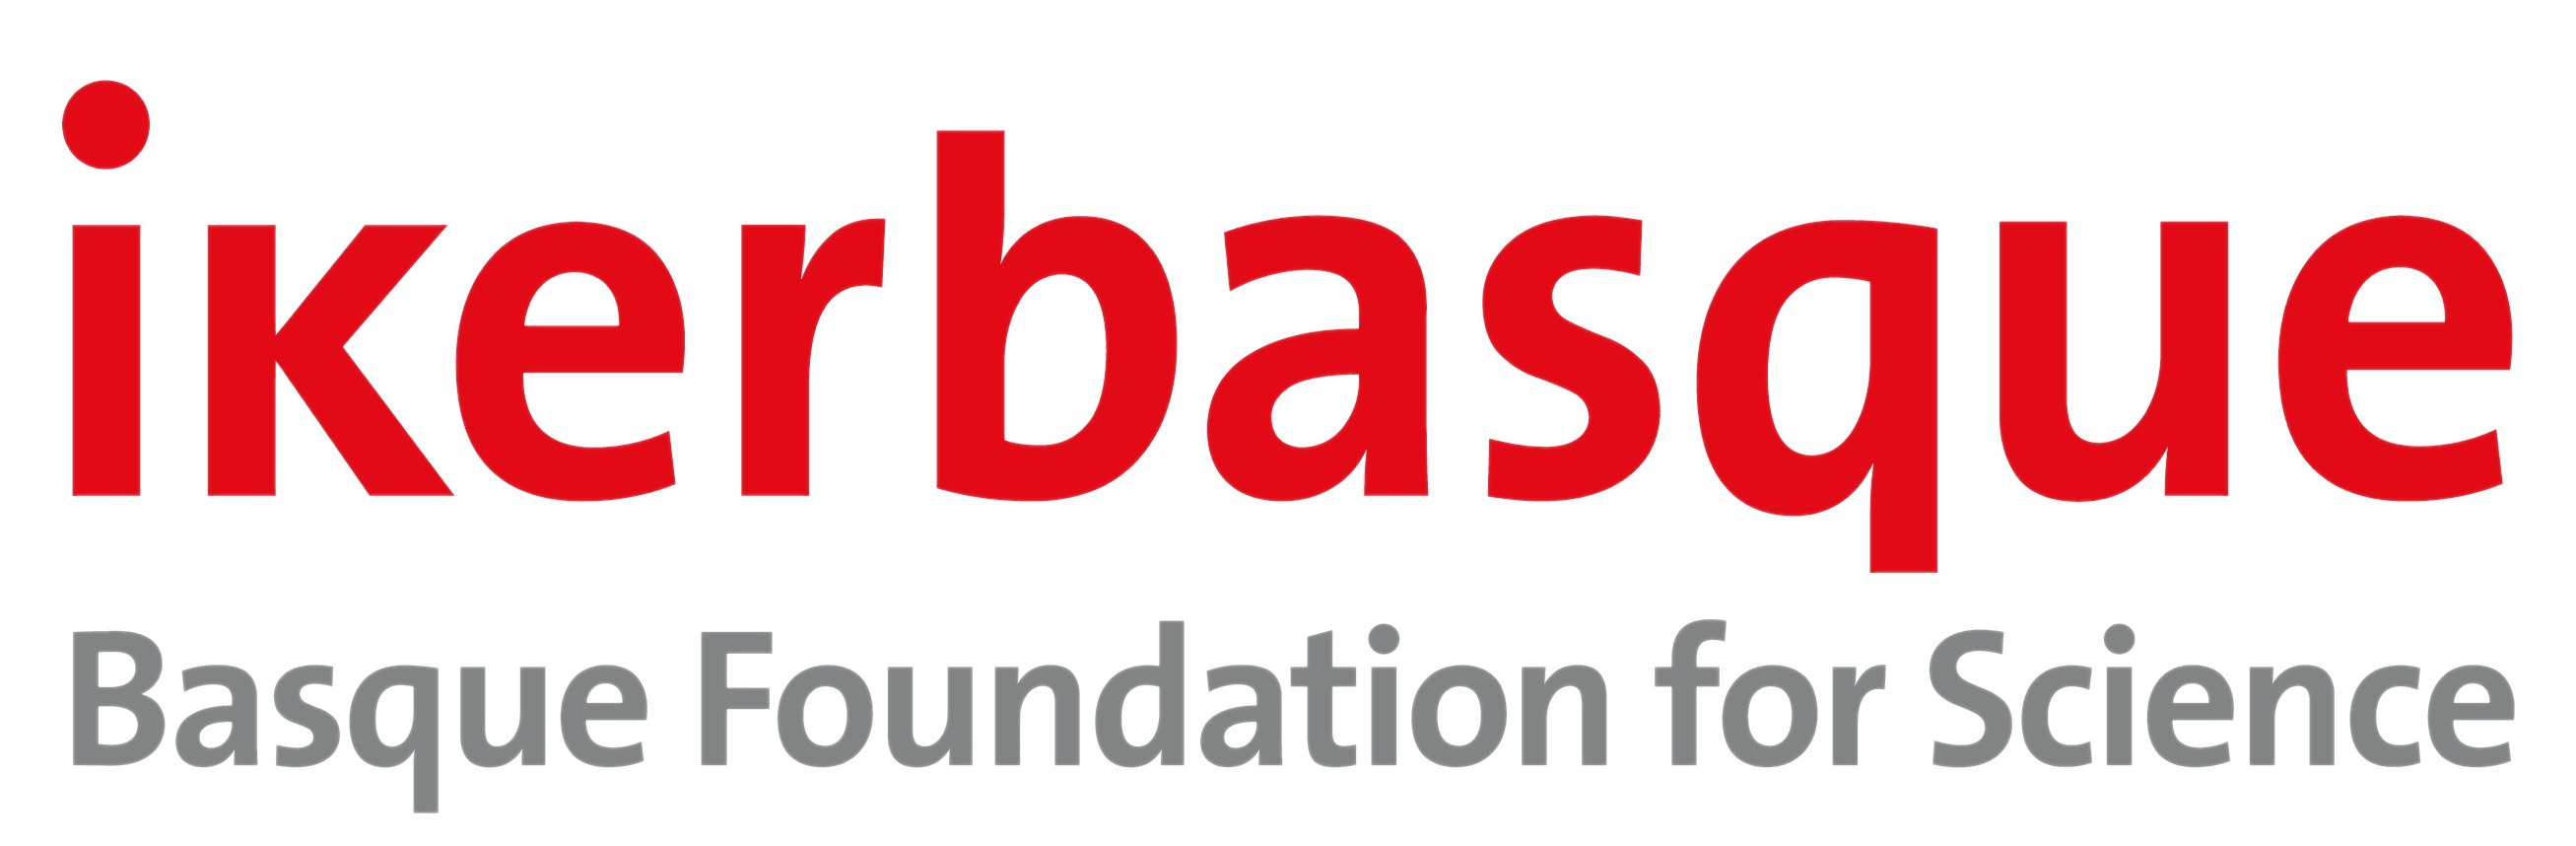 IKERBASQUE, Basque Foundation for Science